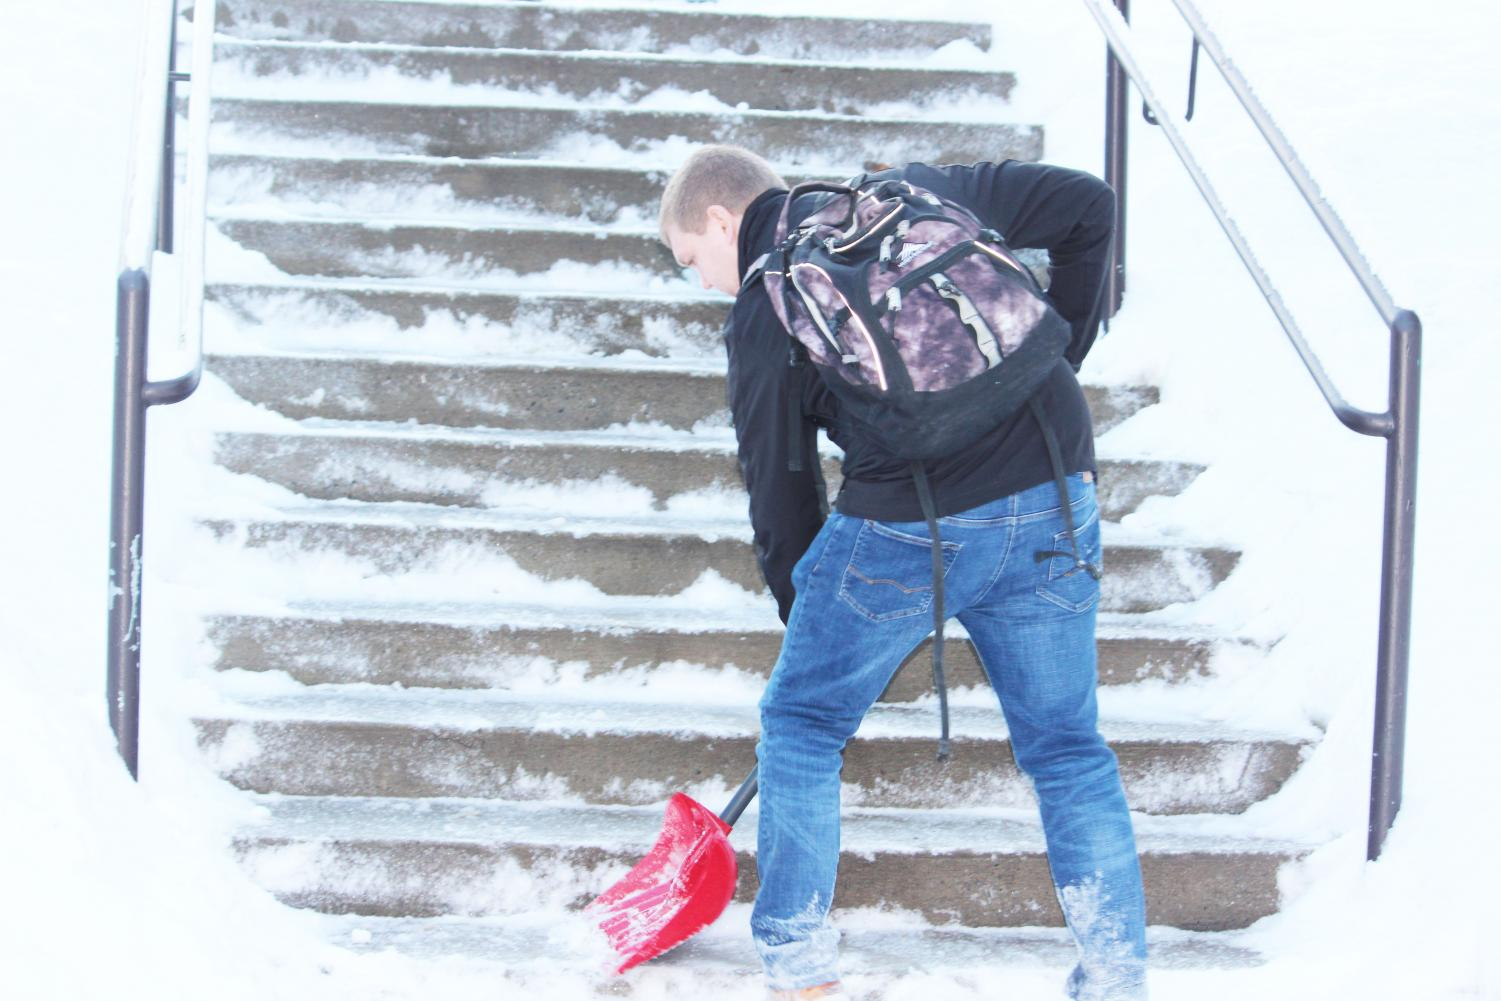 Junior Ryan Stewart shovels snow on Living/Learning Center stairs Feb. 1 with a shovel he purchased from Walmart.